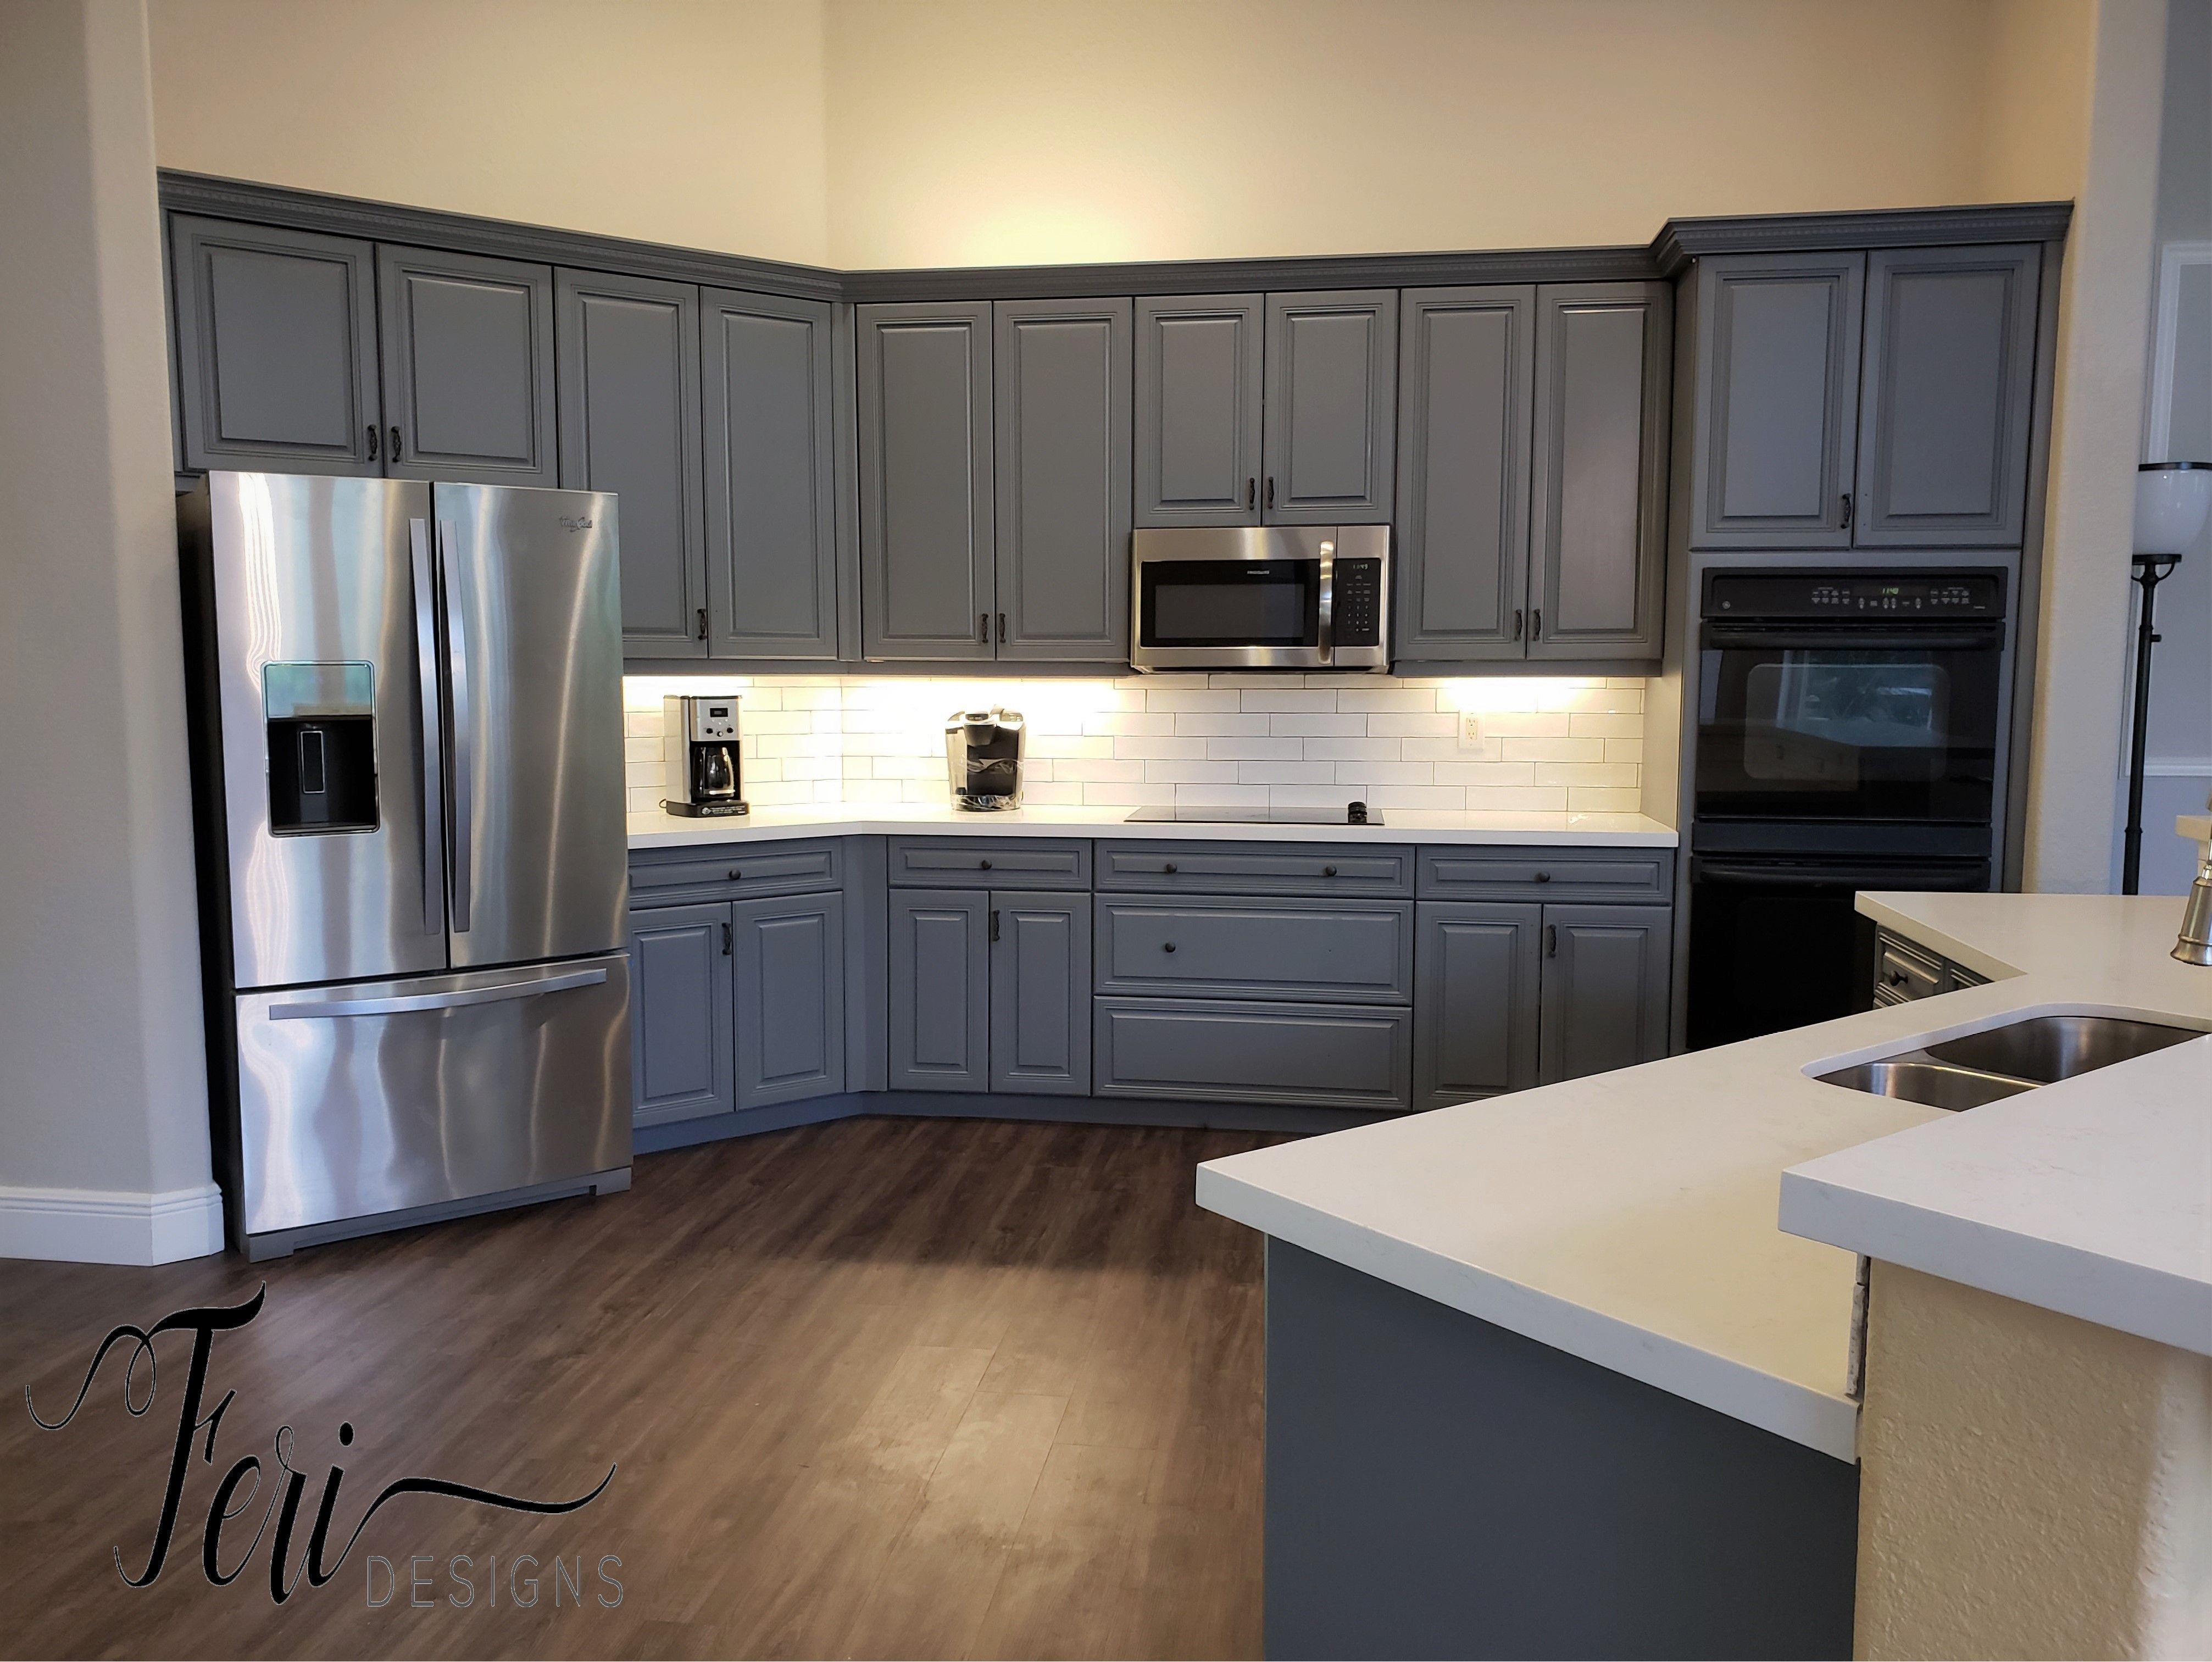 Gray Kitchen Cabinets Kitchen Cabinets In Bathroom Grey Kitchen Cabinets Kitchen Cabinets